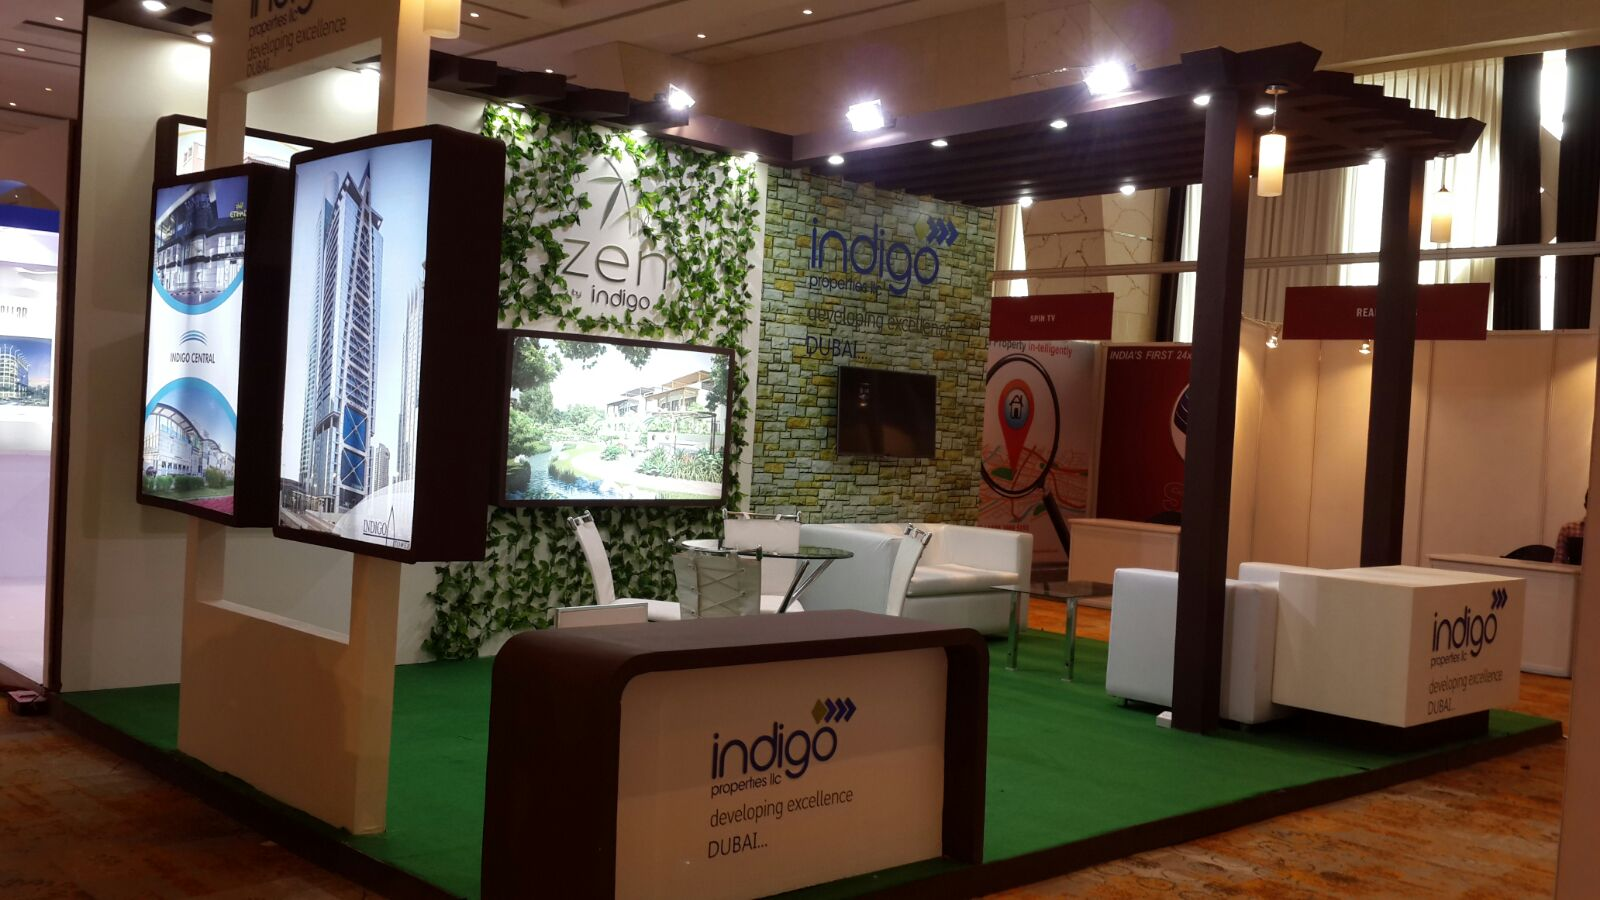 Dimension Events is a Prominent name in Exhibition Industry and is highly recommended Exhibition Stall Designer in Mumbai. We are team of Professional offering Exclusive Exhibitions Solutions offer Out of the Box Exhibition Stall Design Concepts and best Exhibitions Booth Fabrication.